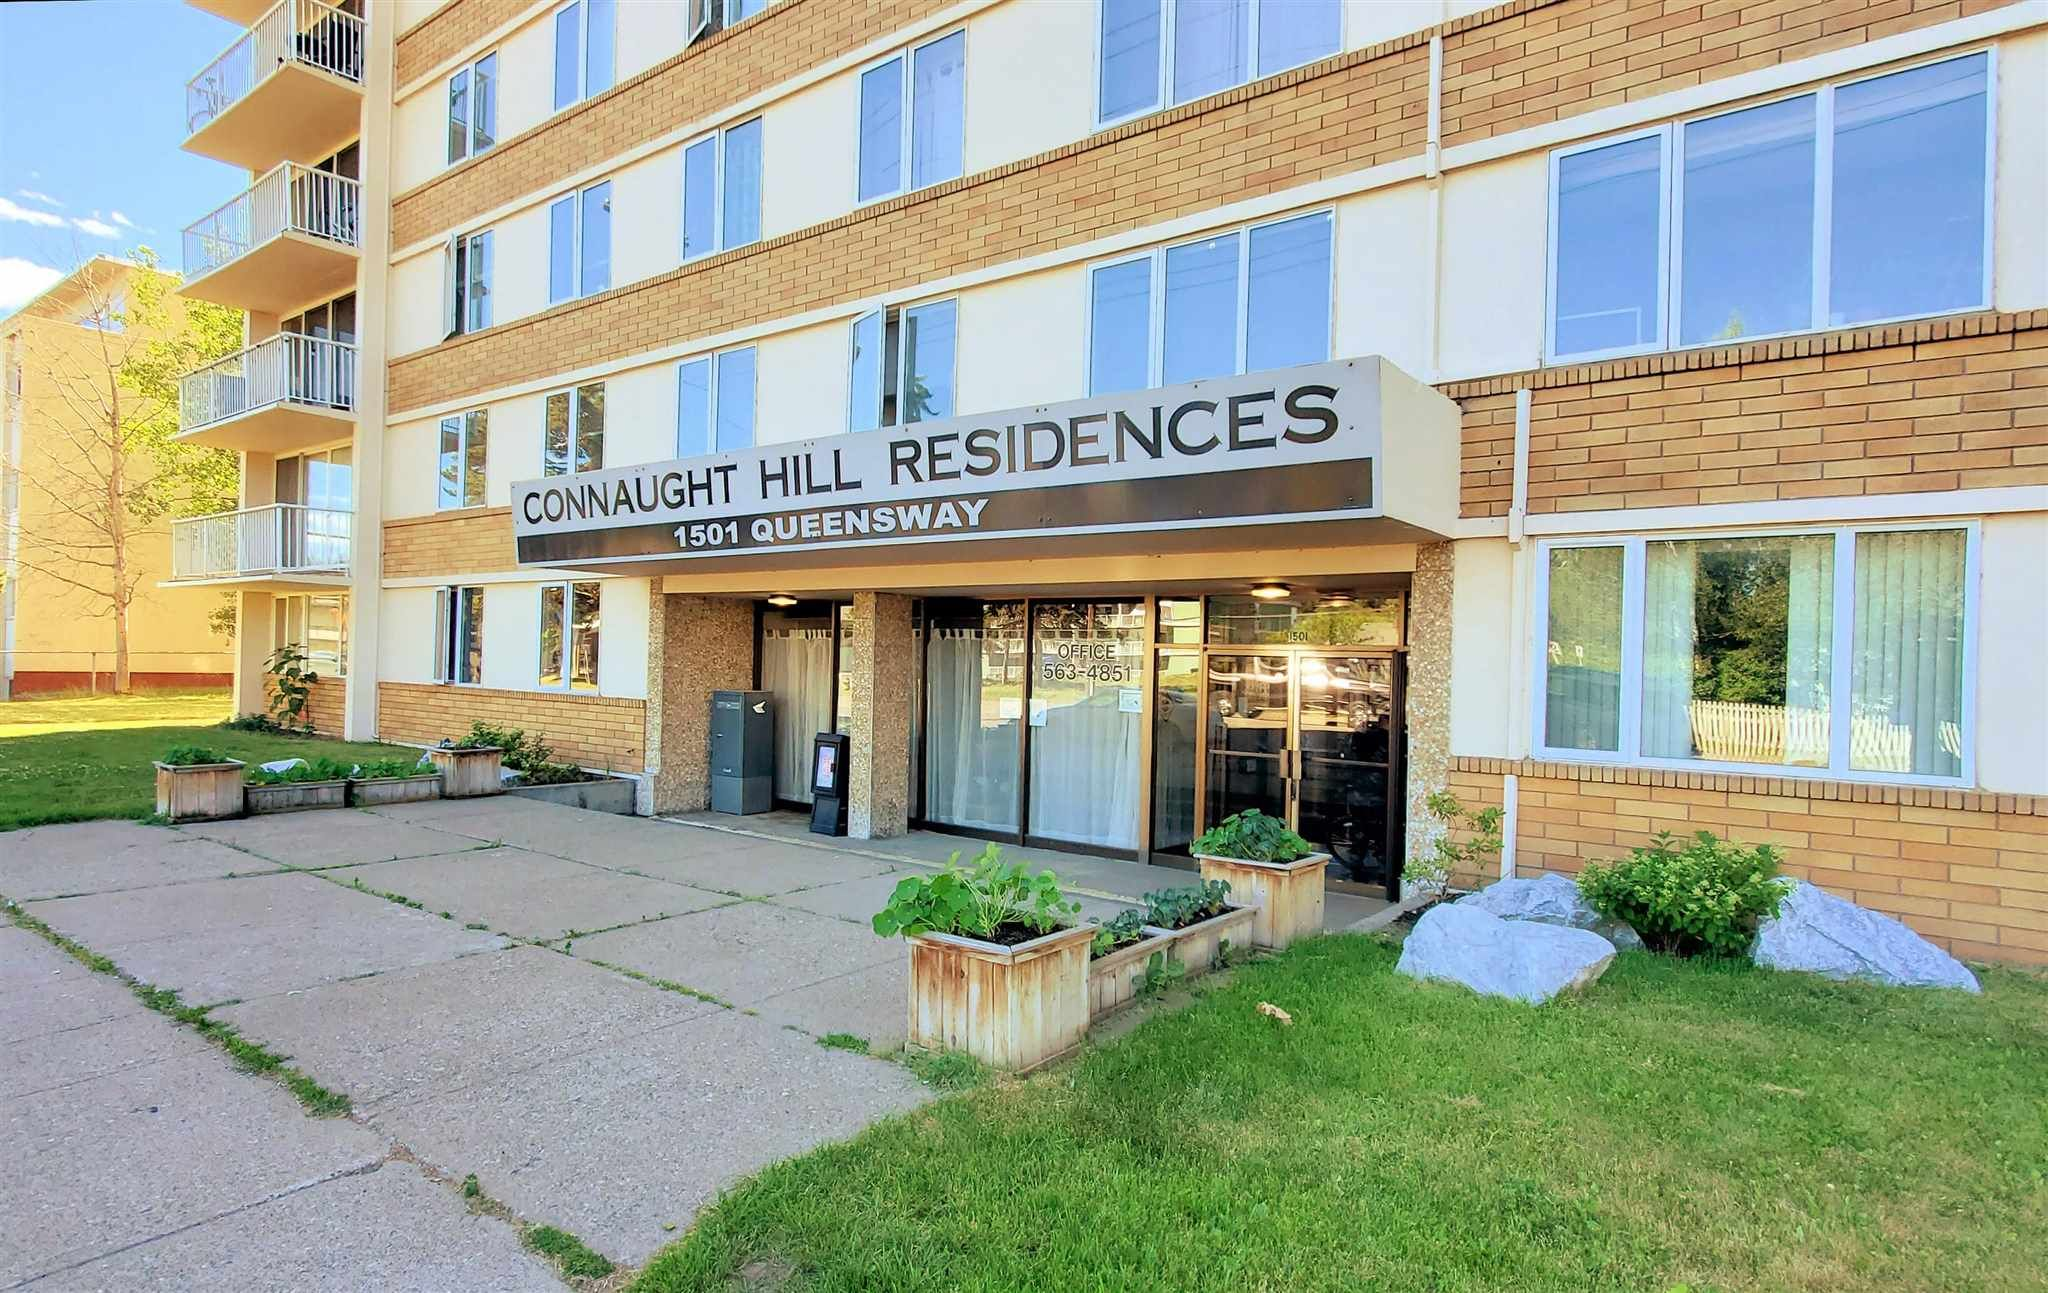 """Main Photo: 1206 1501 QUEENSWAY Street in Prince George: Connaught Condo for sale in """"CONNAUGHT HILL RESIDENCES"""" (PG City Central (Zone 72))  : MLS®# R2596974"""